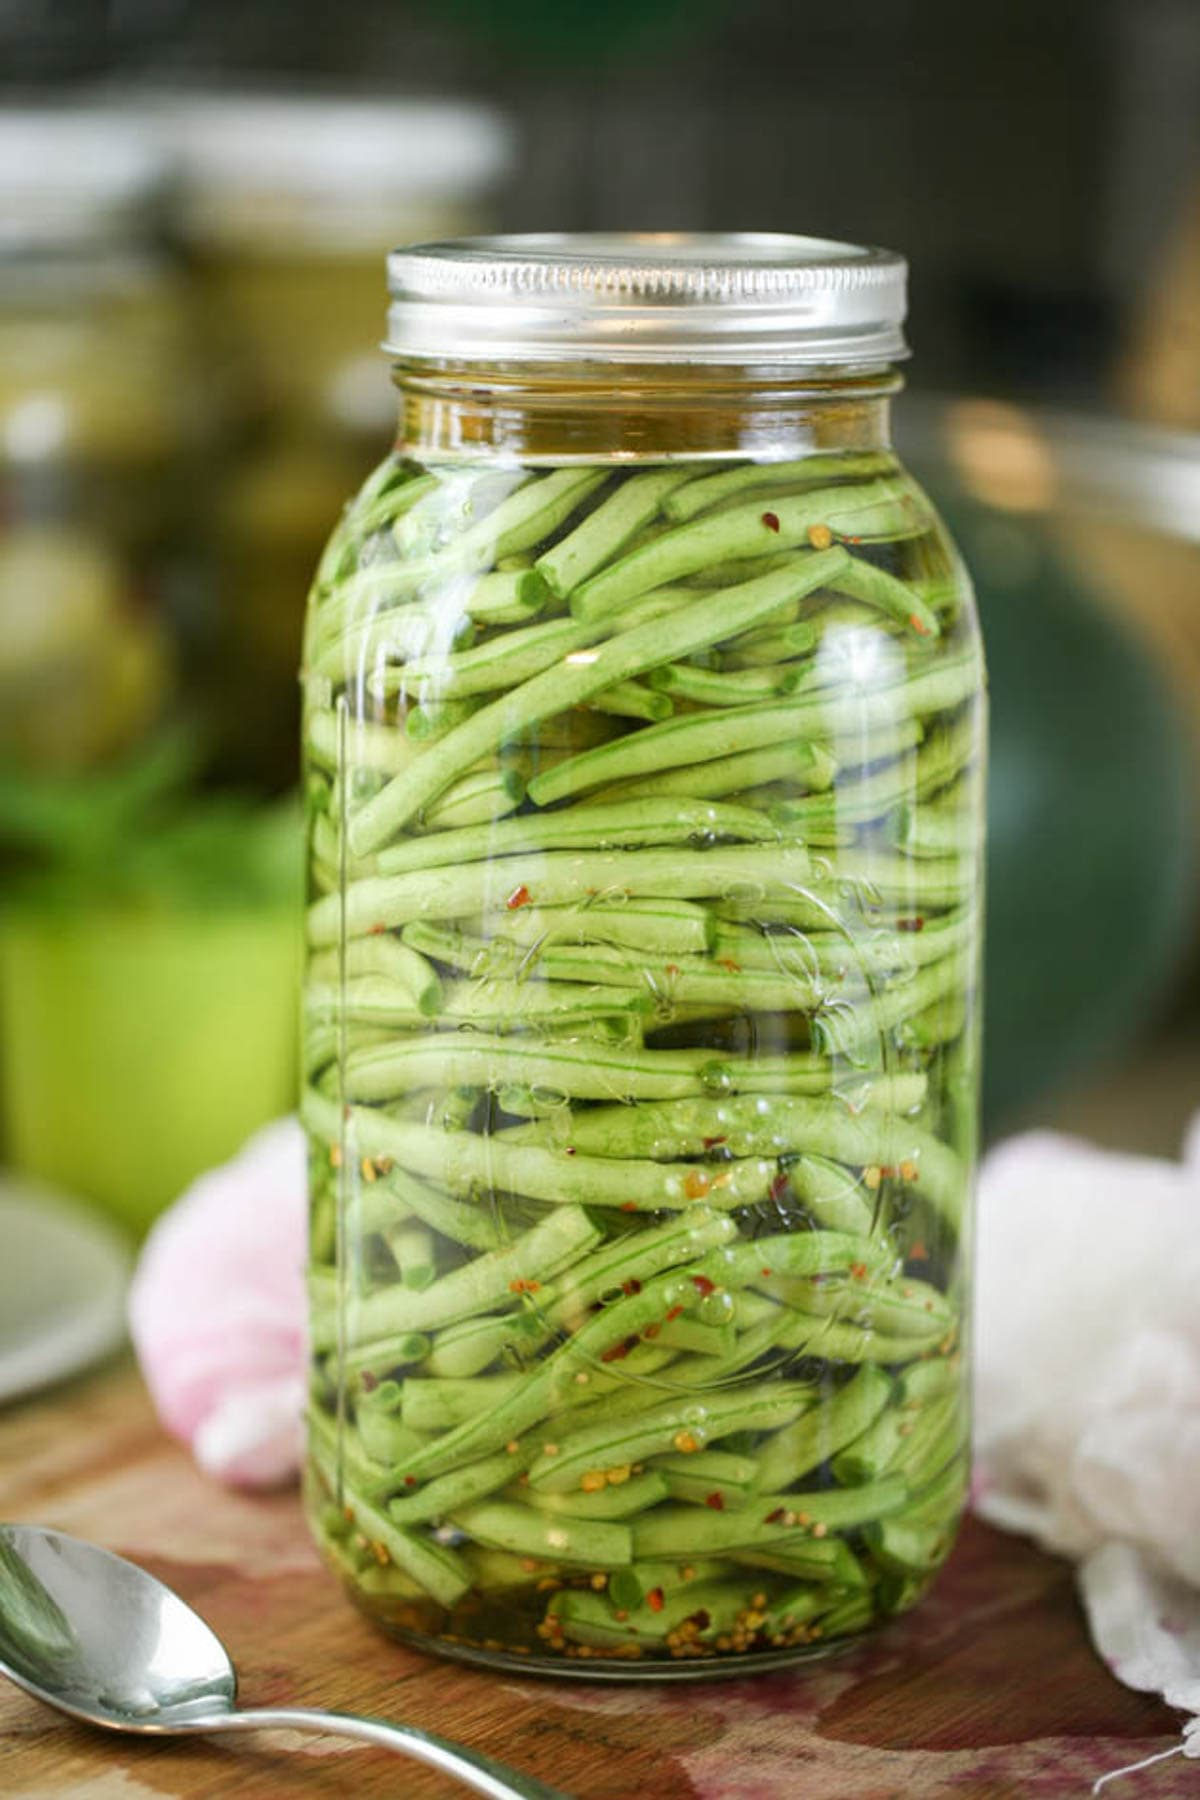 A jar of lacto fermented green beans.